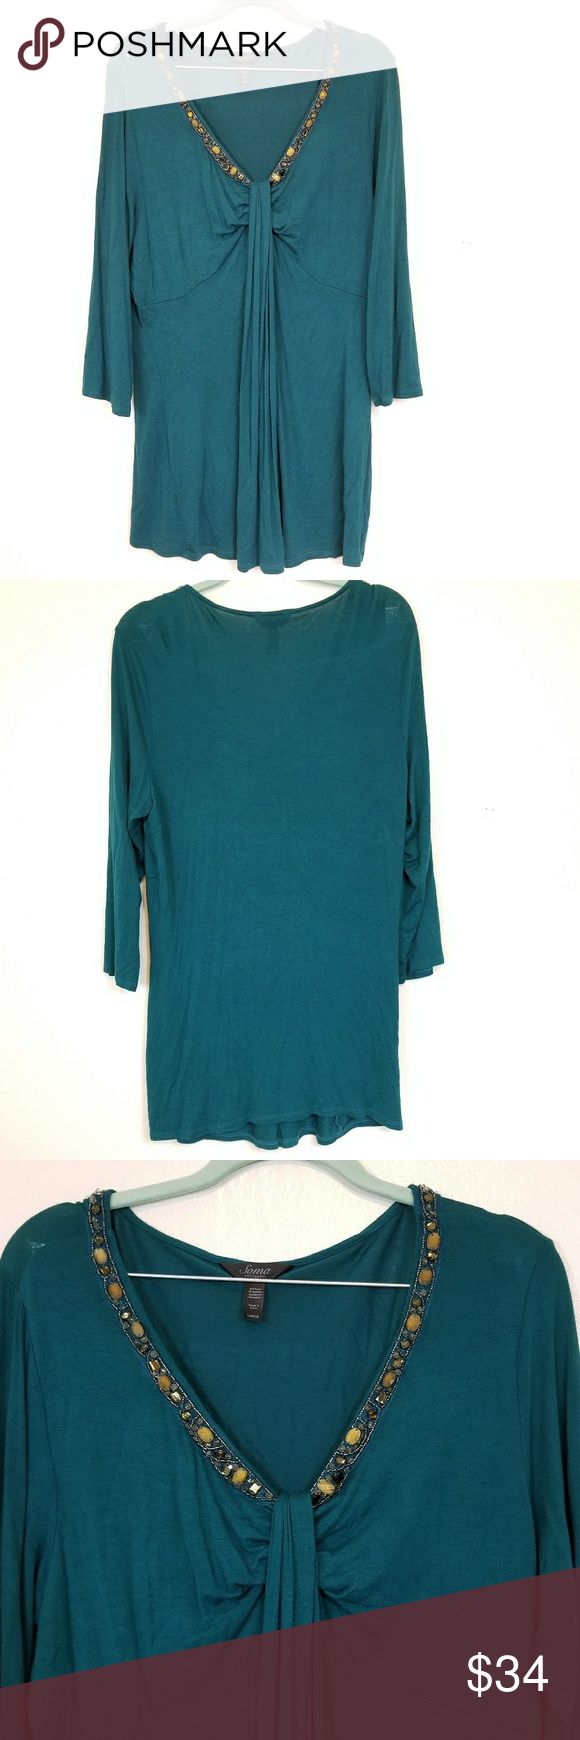 Soma Embellished Shirt Emerald green Soma tunic. It has beading around the front of the neckline. The cut is very flowy and flattering to any shape. Soma clothing is so incredibly soft and comfortable. You can wear a nice blouse like this one and still feel like your wearing pajamas. Measurements  Length 31 inches Sleeve 20 Pit to pit 21 Soma Tops Blouses